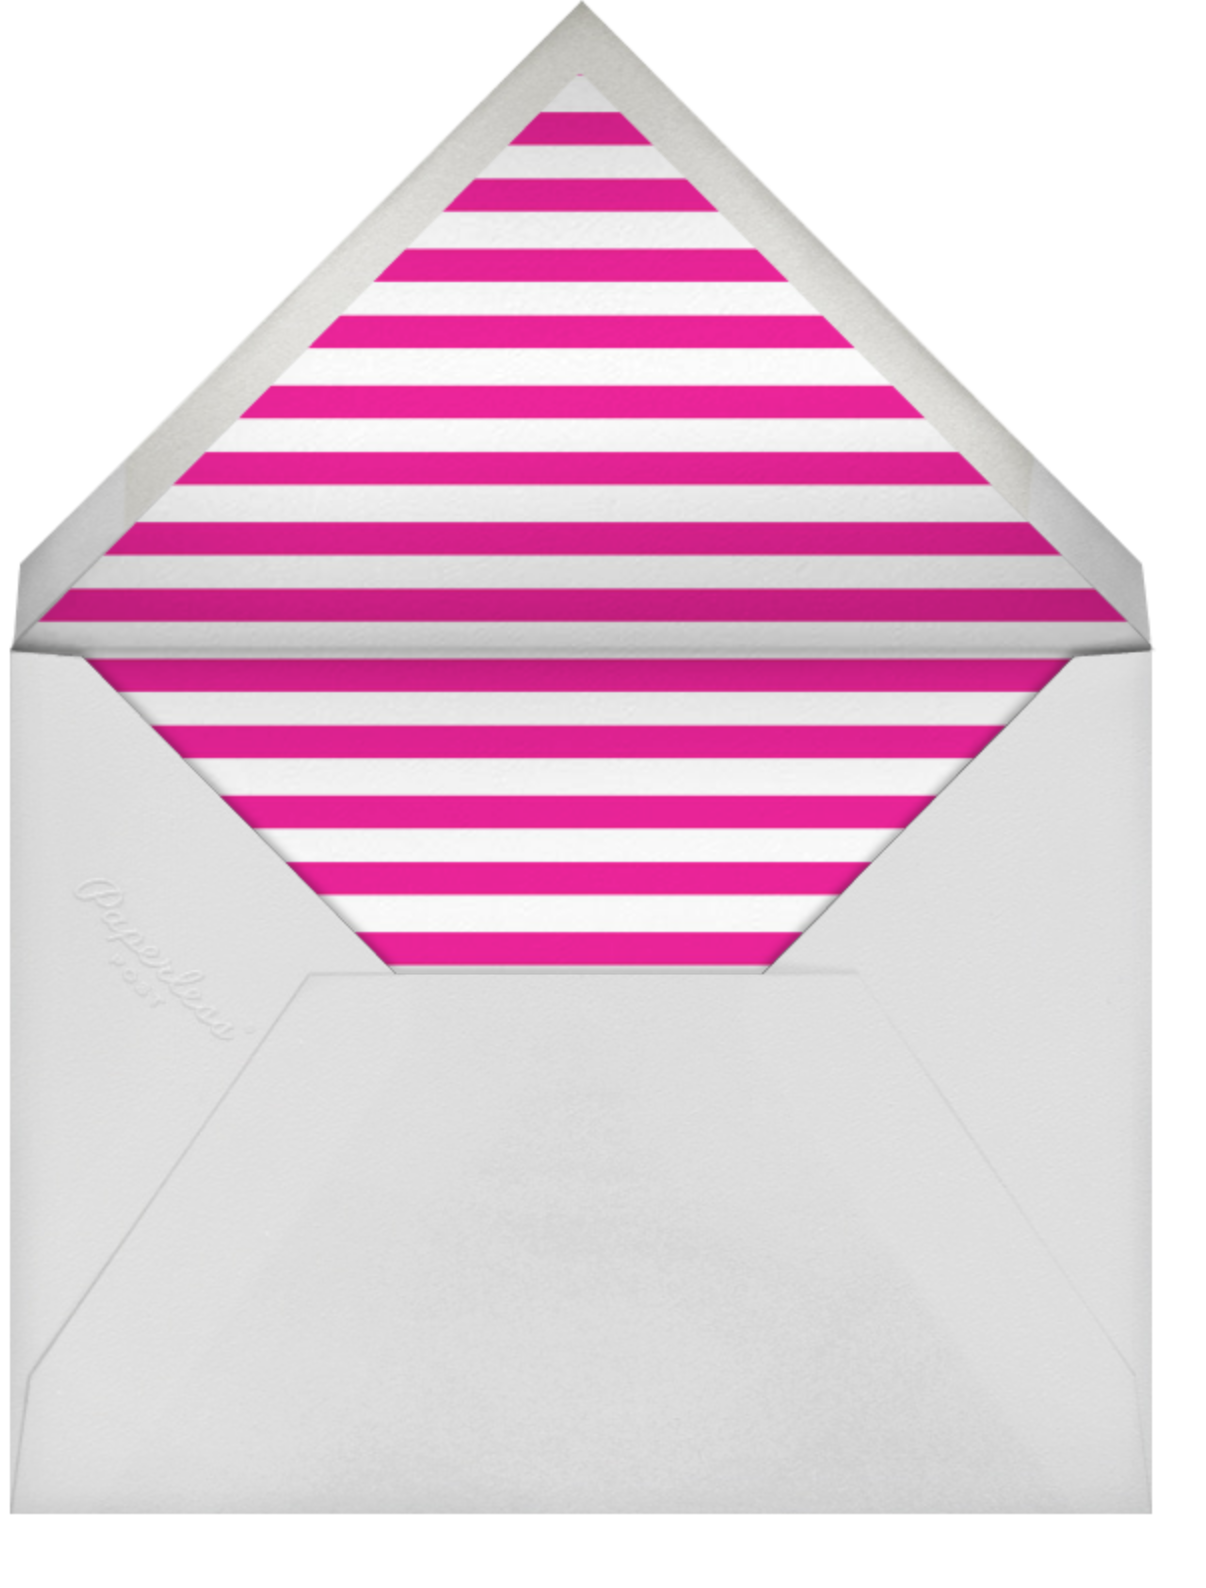 Heart Save the Date - Pink - The Indigo Bunting - The Indigo Bunting - envelope back